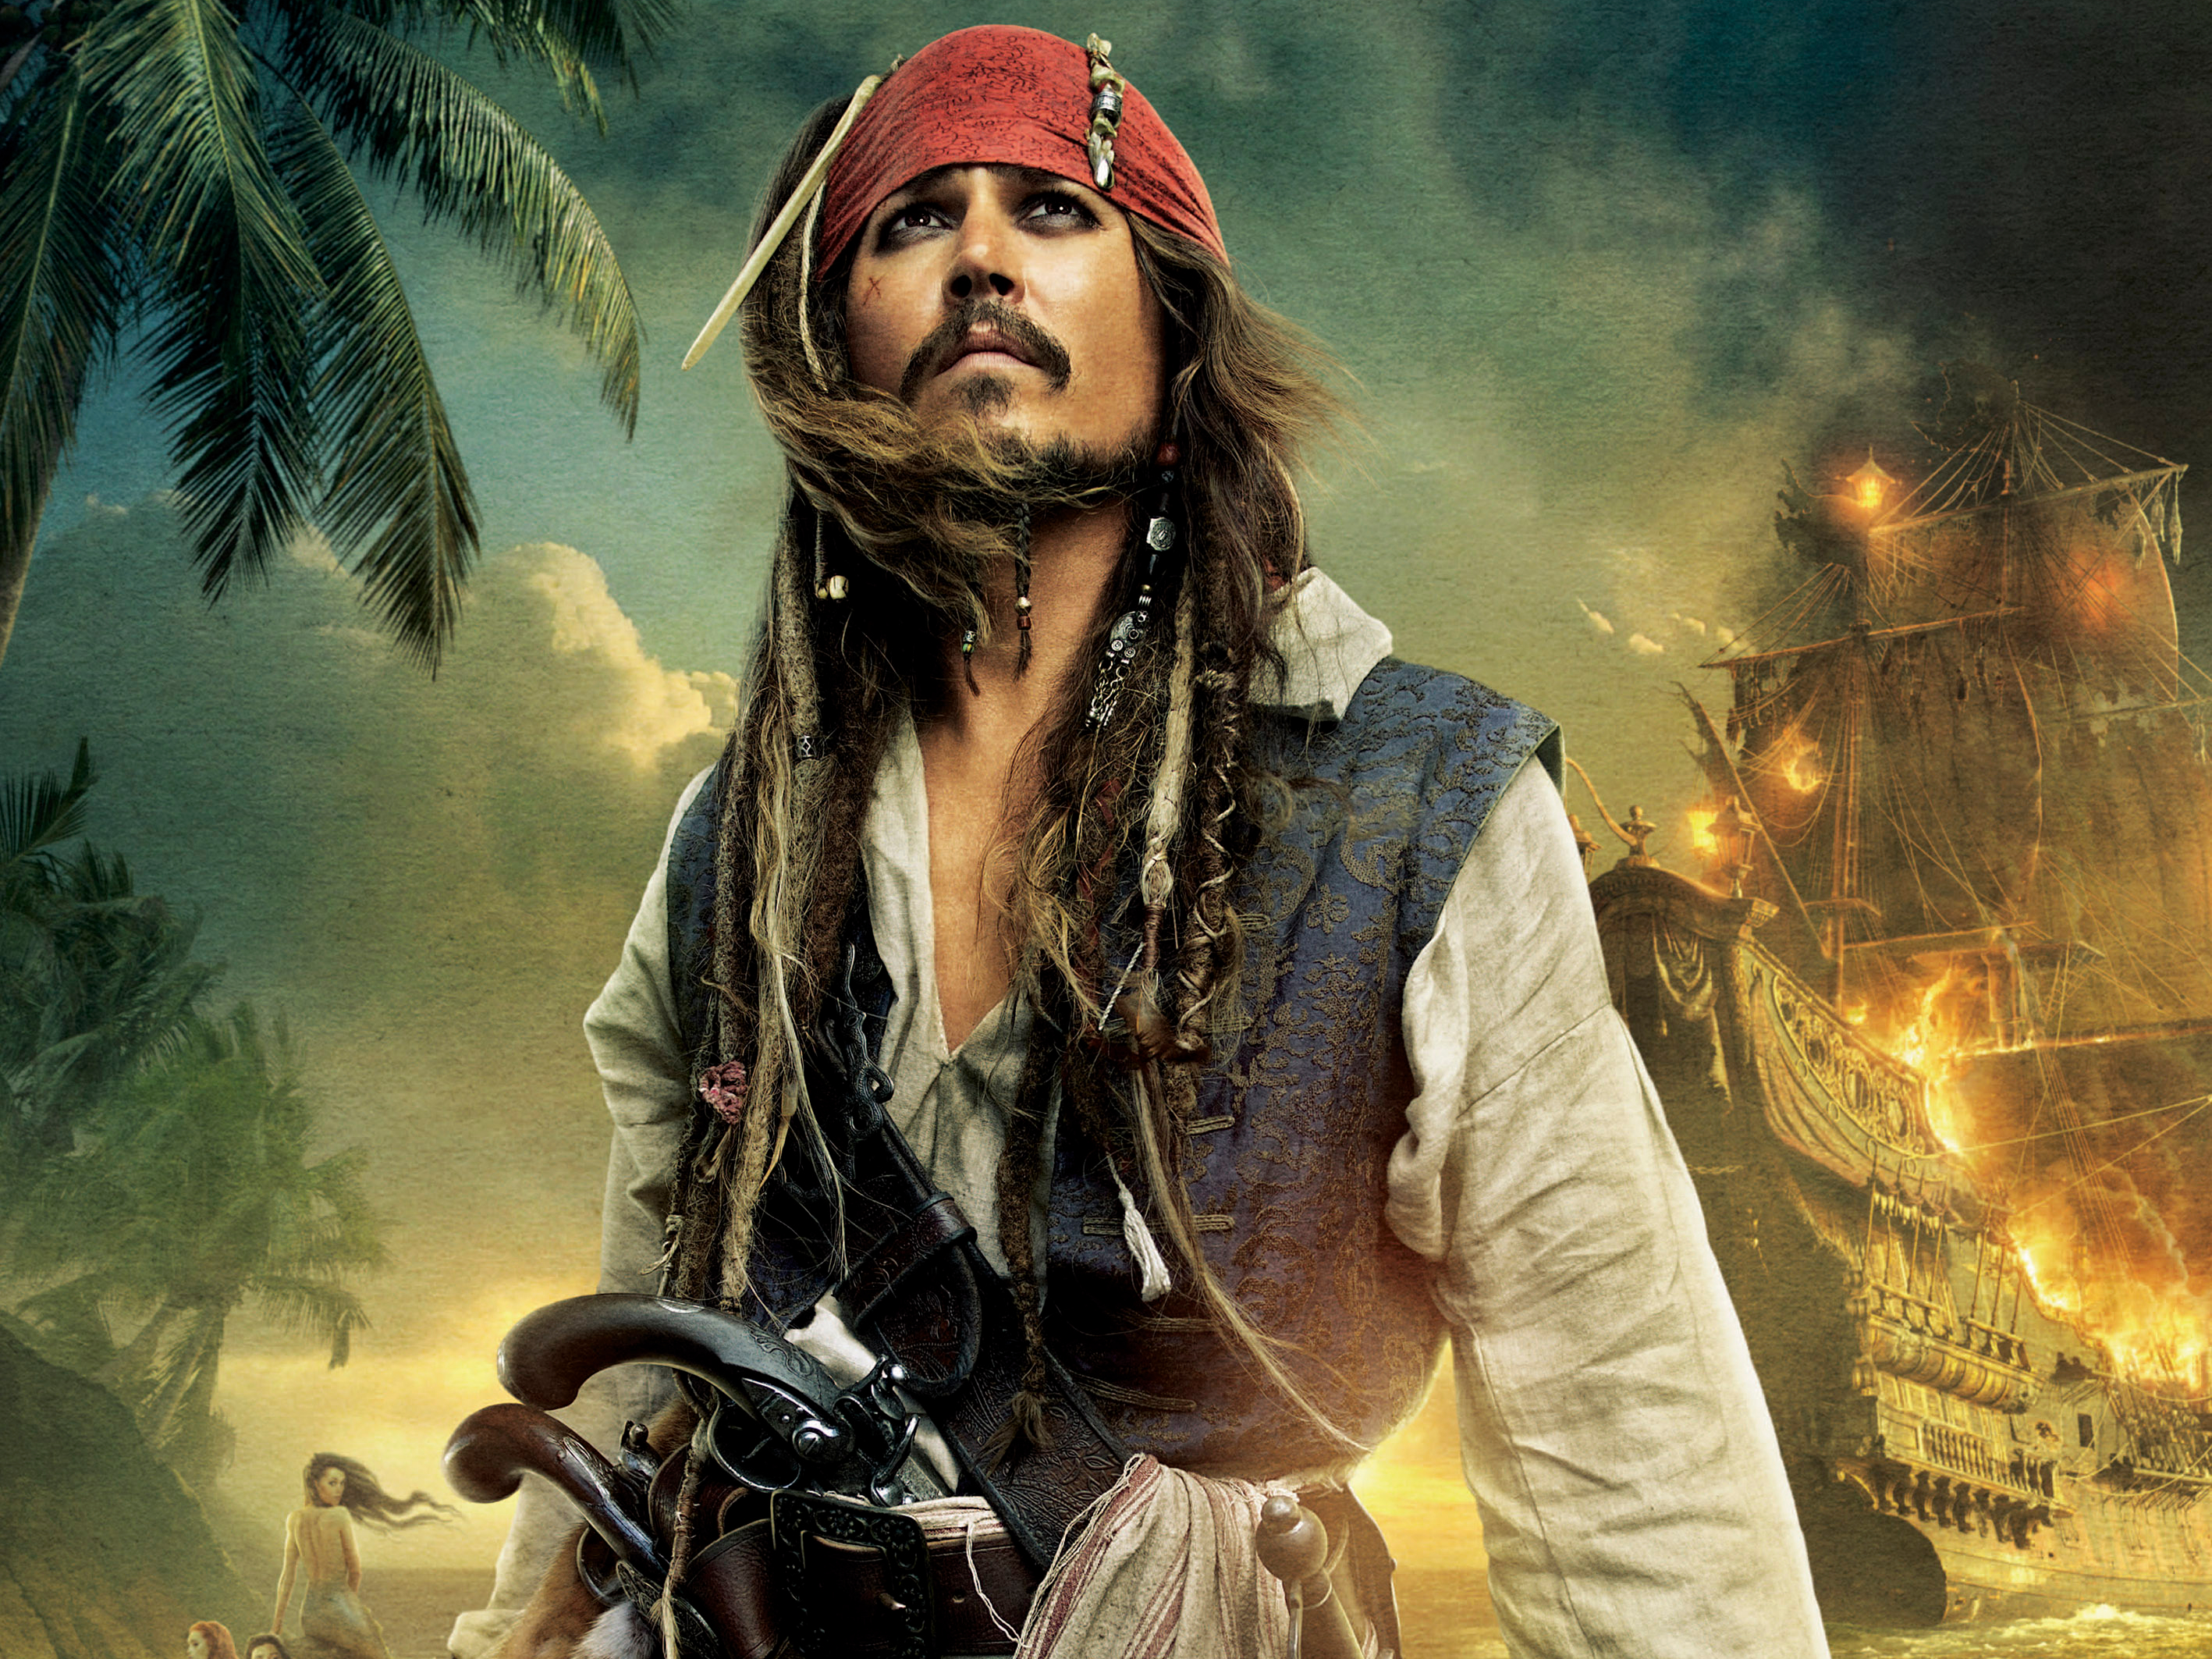 302 Johnny Depp Fonds Décran Hd Arrière Plans Wallpaper Abyss